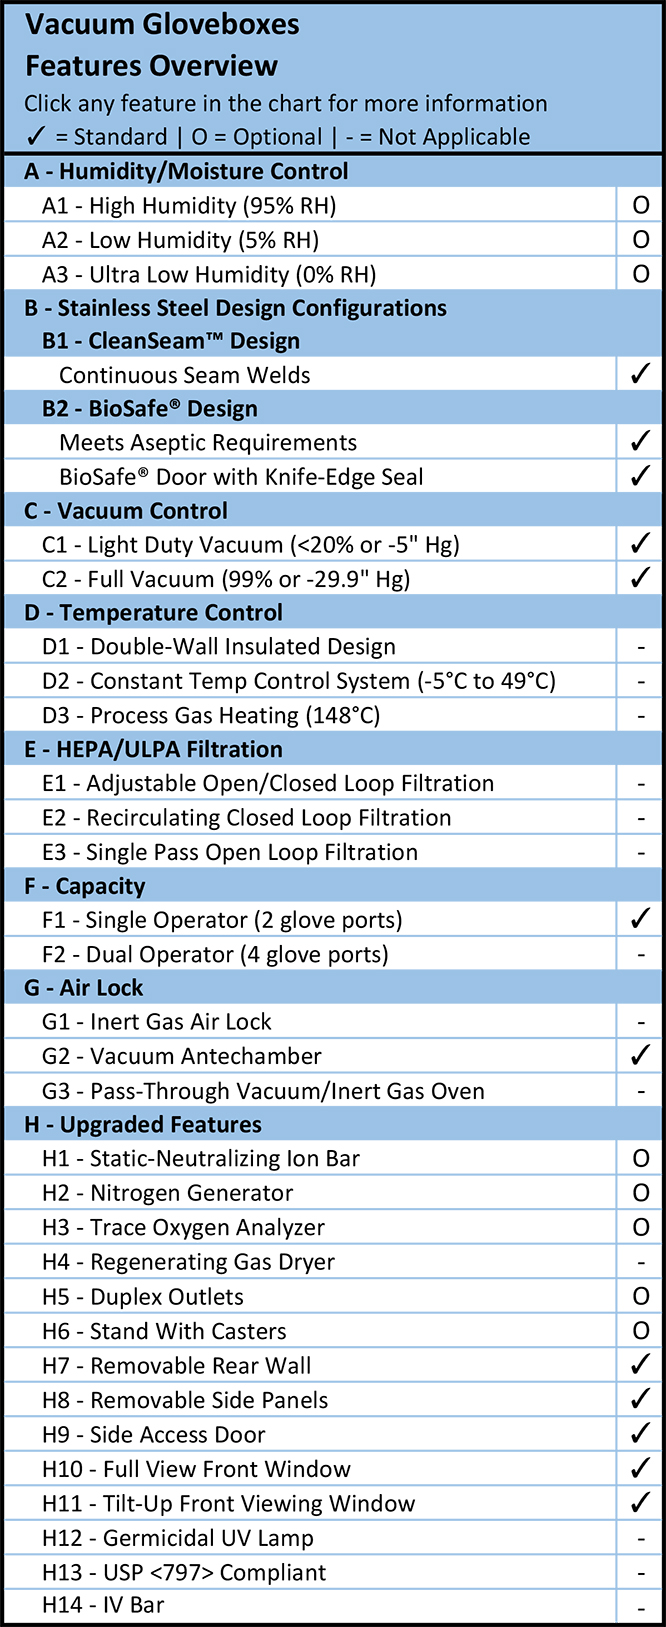 Vacuum Gloveboxes Features Overview